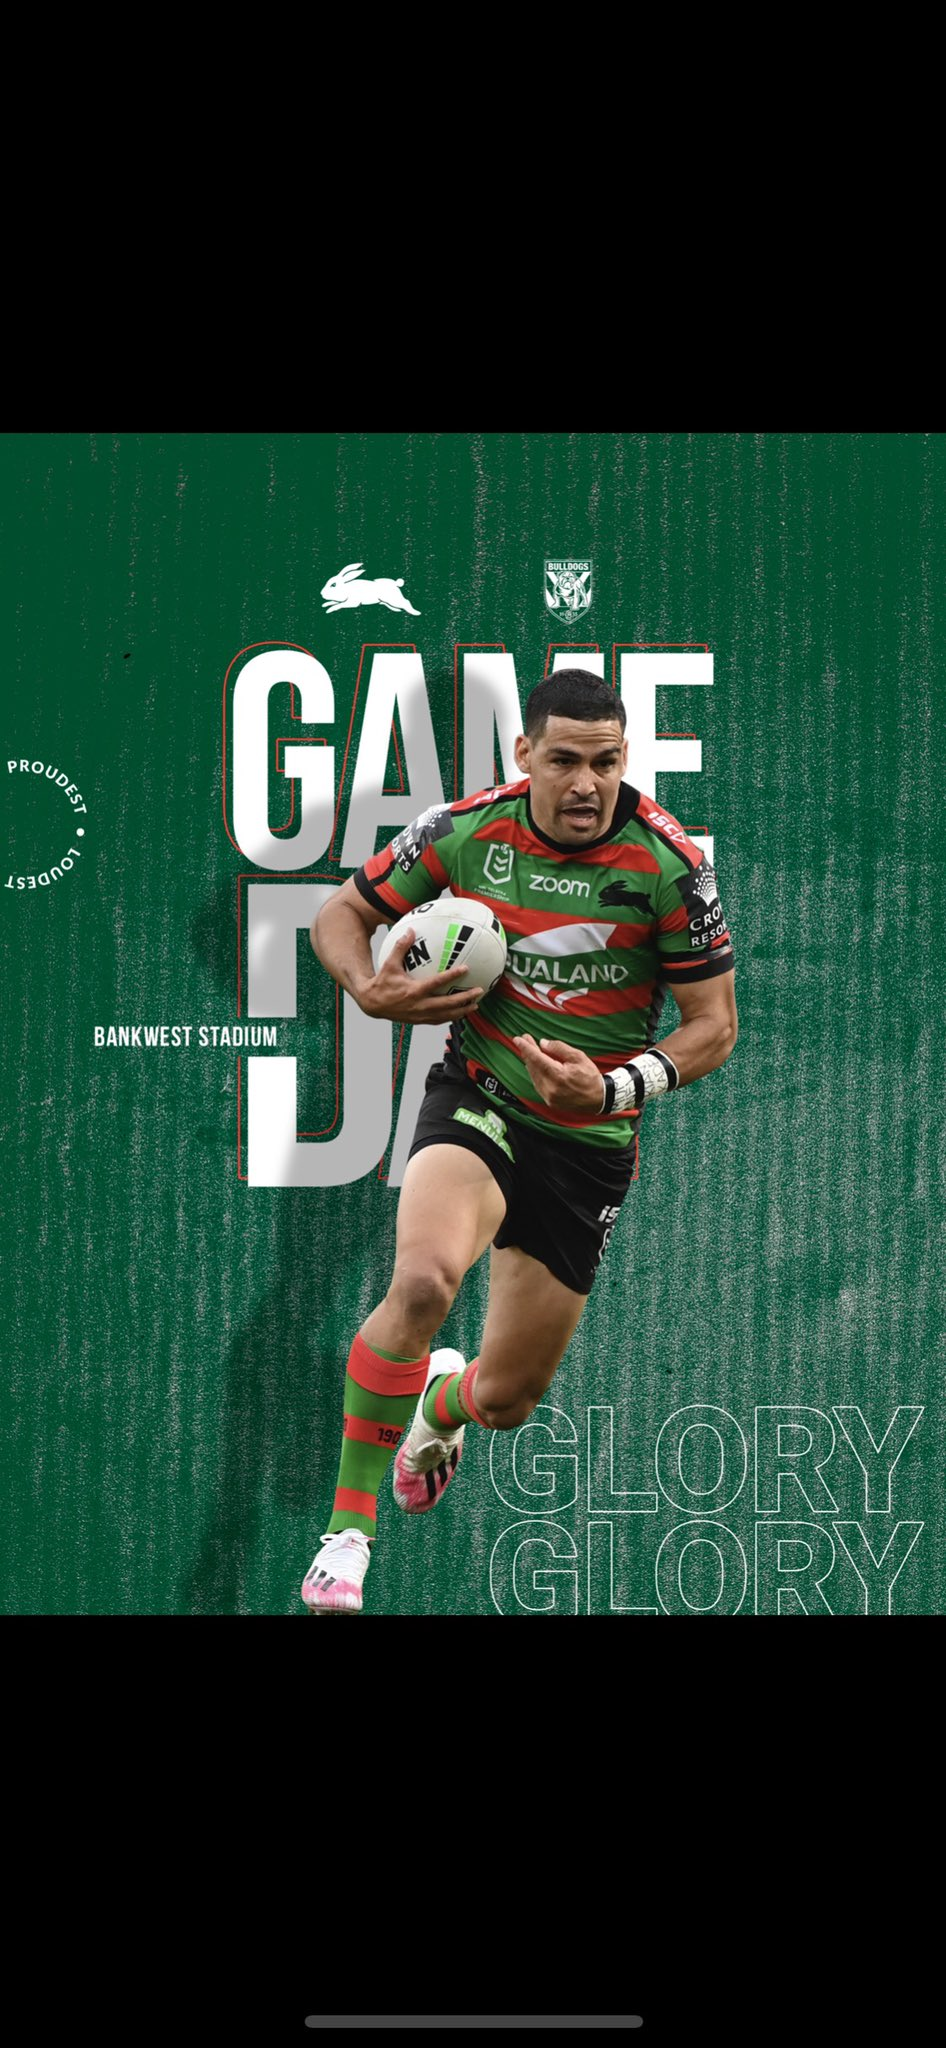 #GoRabbitohs Photo